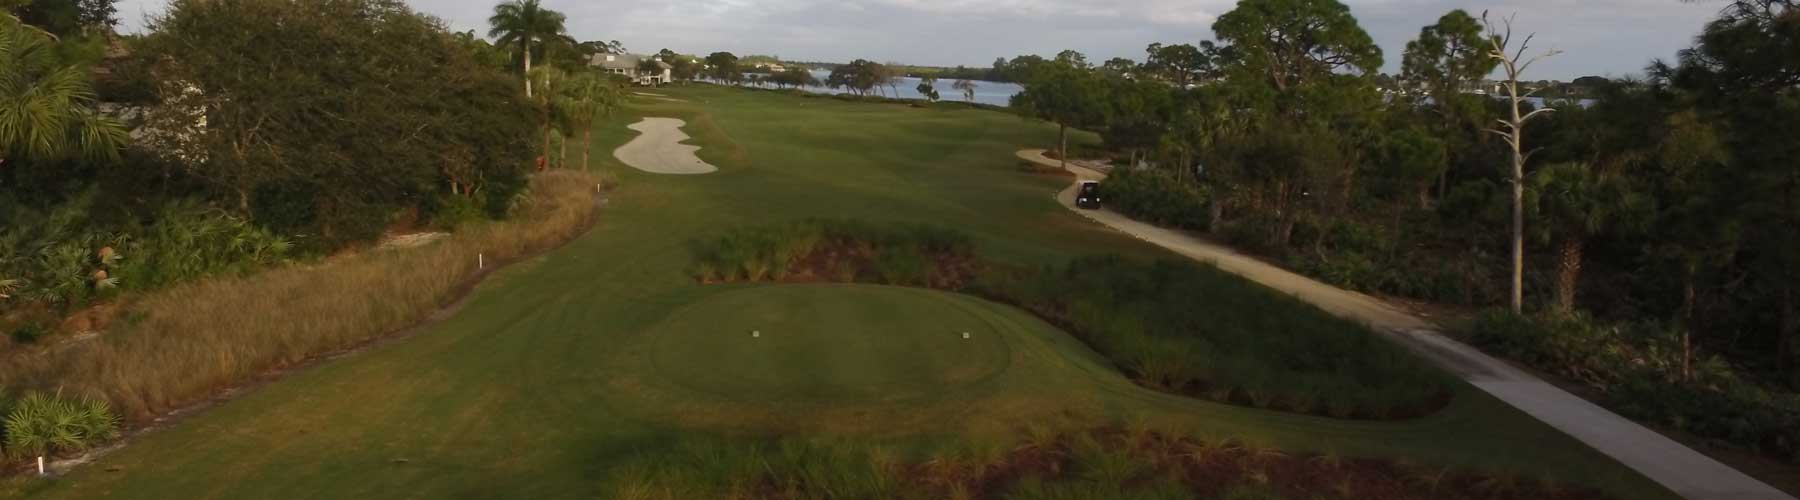 Why is Harbour Ridge Country Club Considered a Private Golf Oasis? HarbourRidge